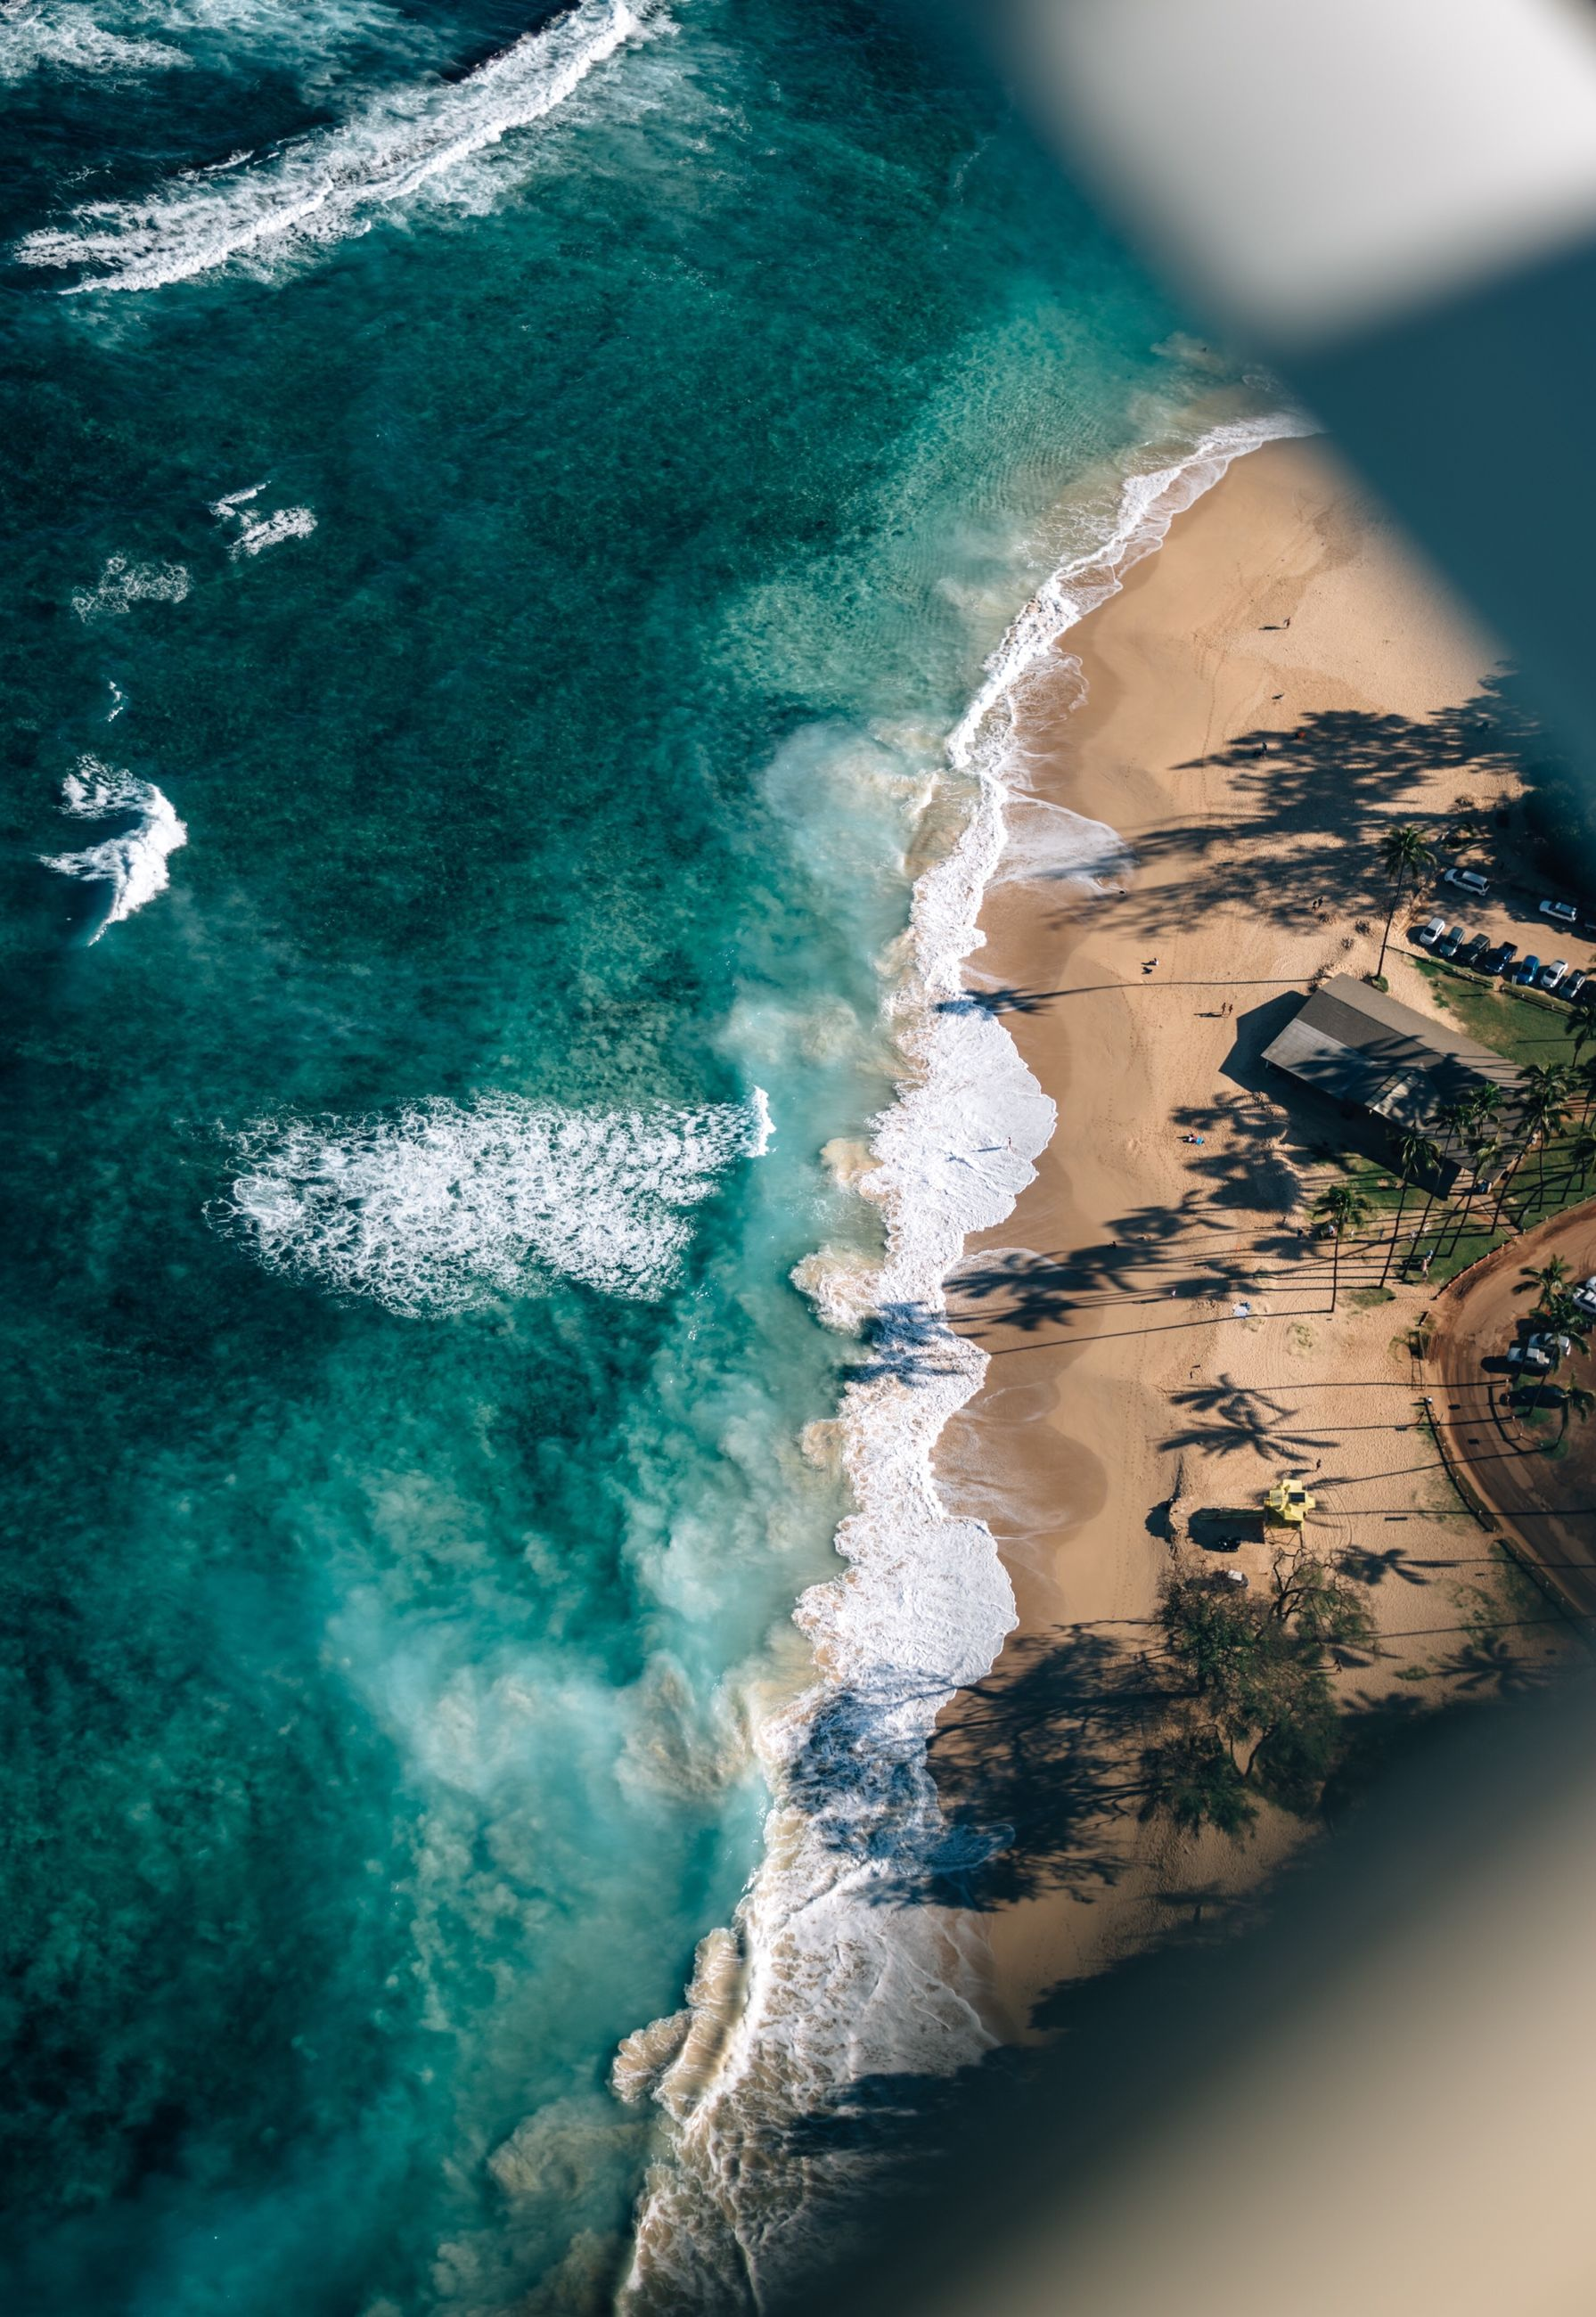 water, sea, beauty in nature, motion, scenics - nature, nature, beach, aquatic sport, sport, wave, day, land, no people, outdoors, high angle view, power in nature, aerial view, travel